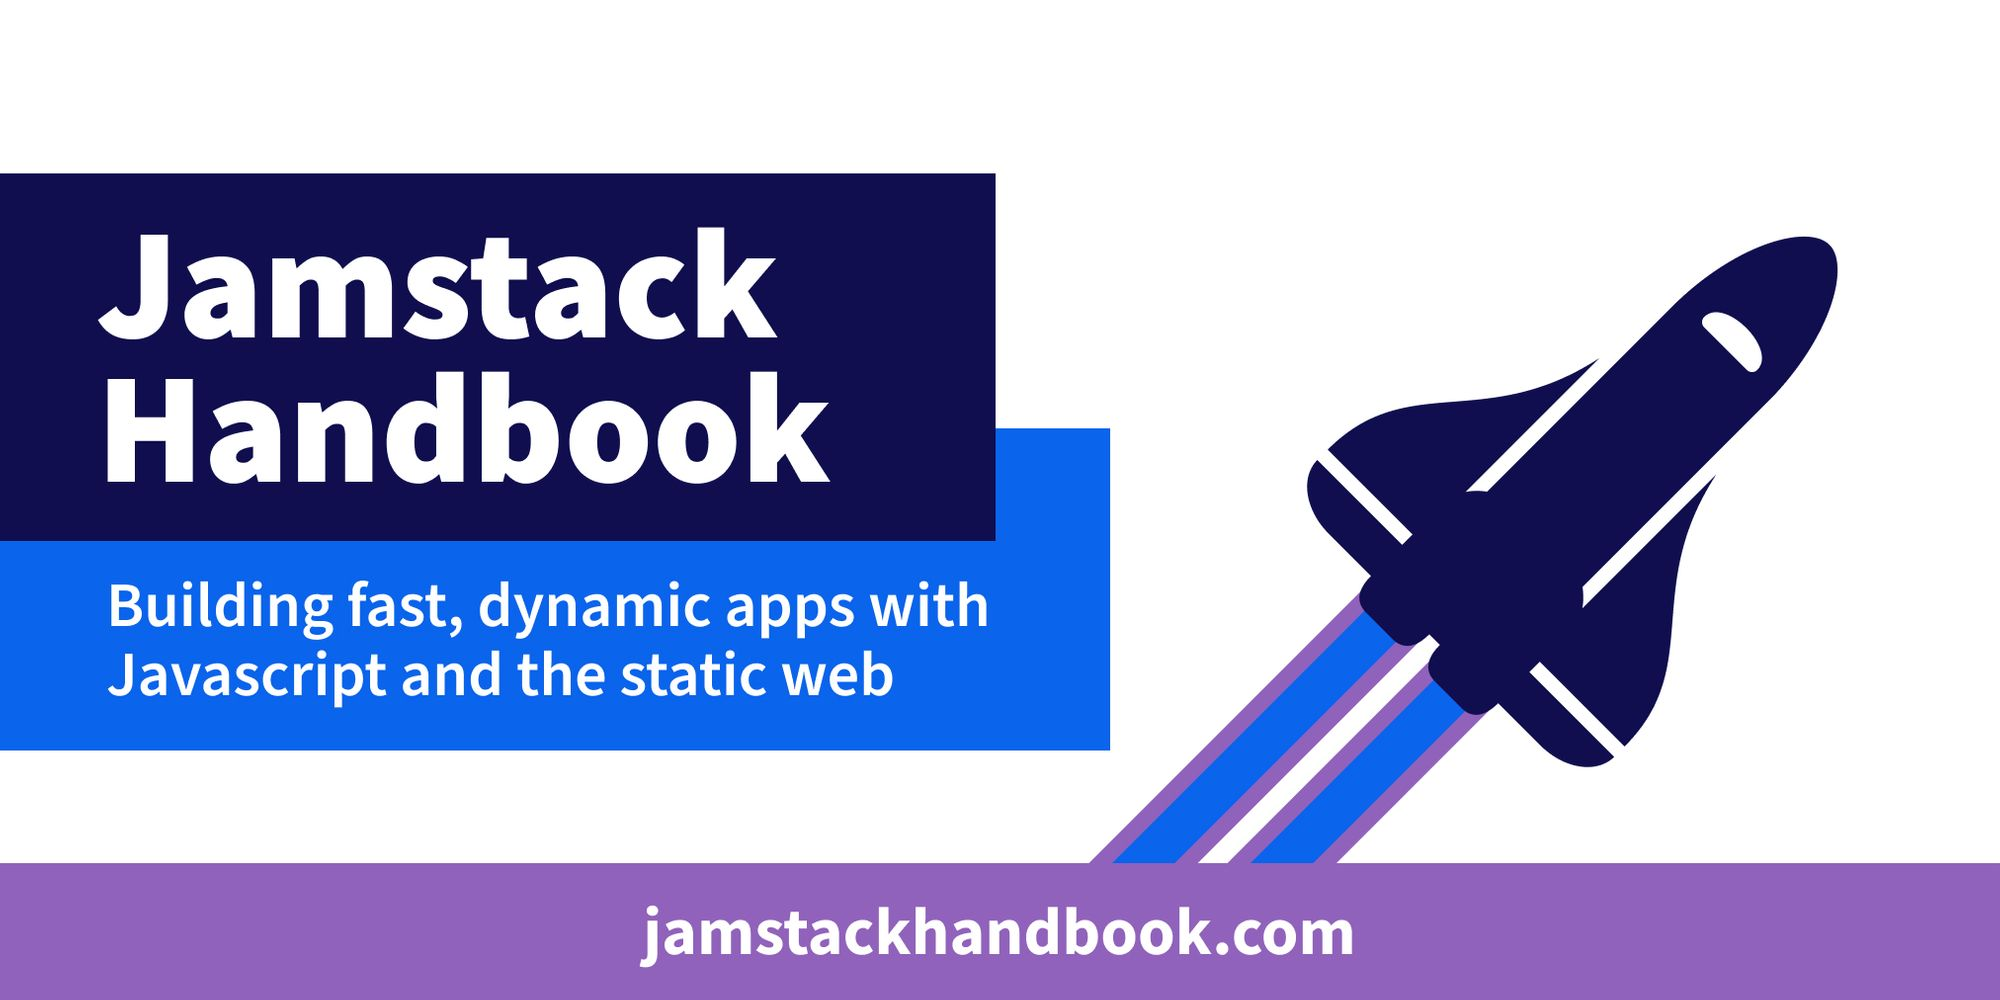 Jamstack Handbook: Building fast, dynamic apps with Javascript and the static web